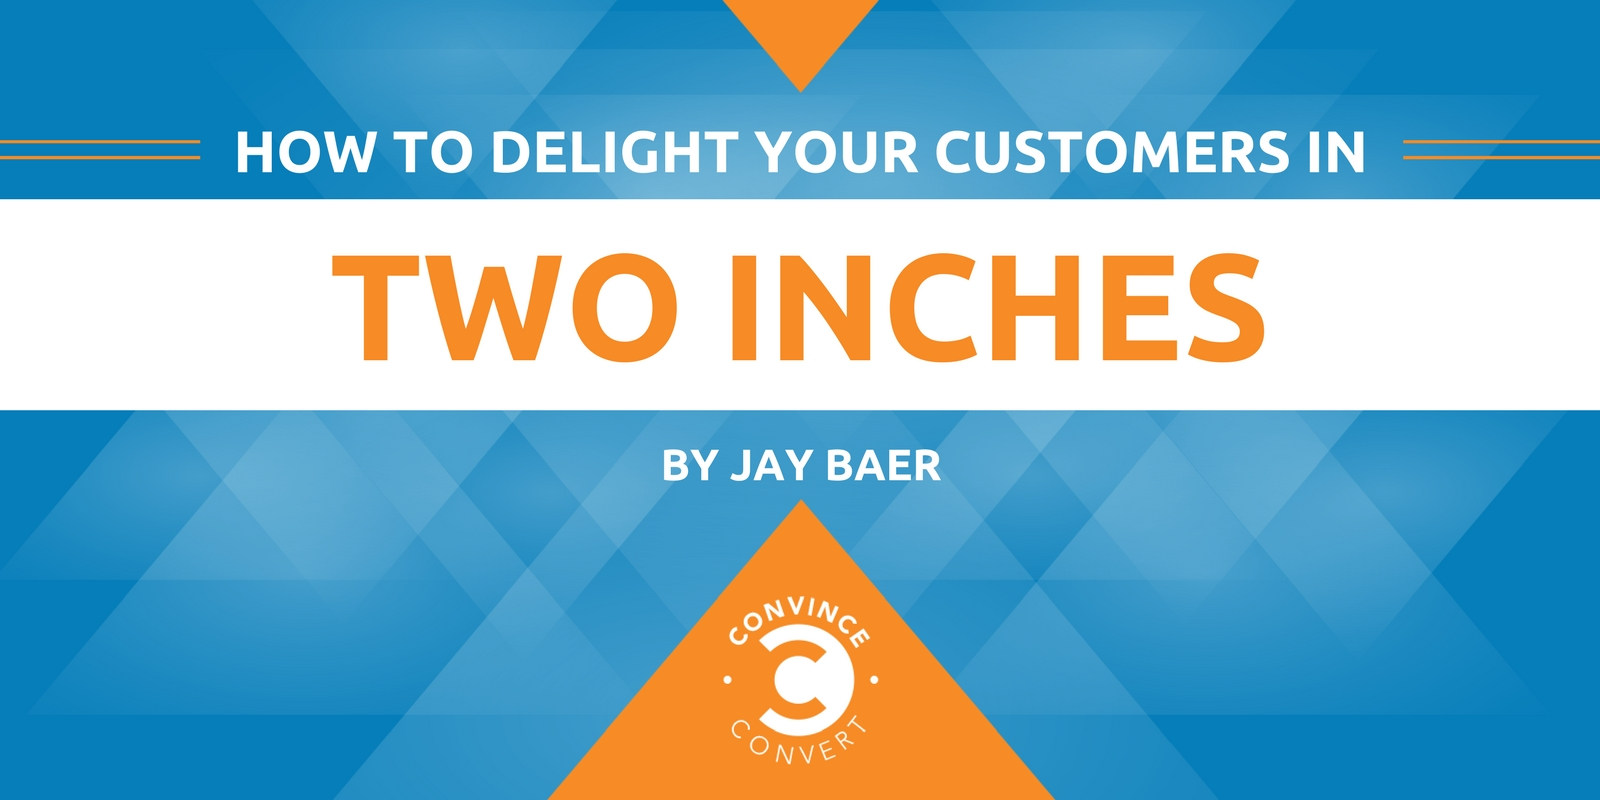 How to Delight Your Customers in Two Inches